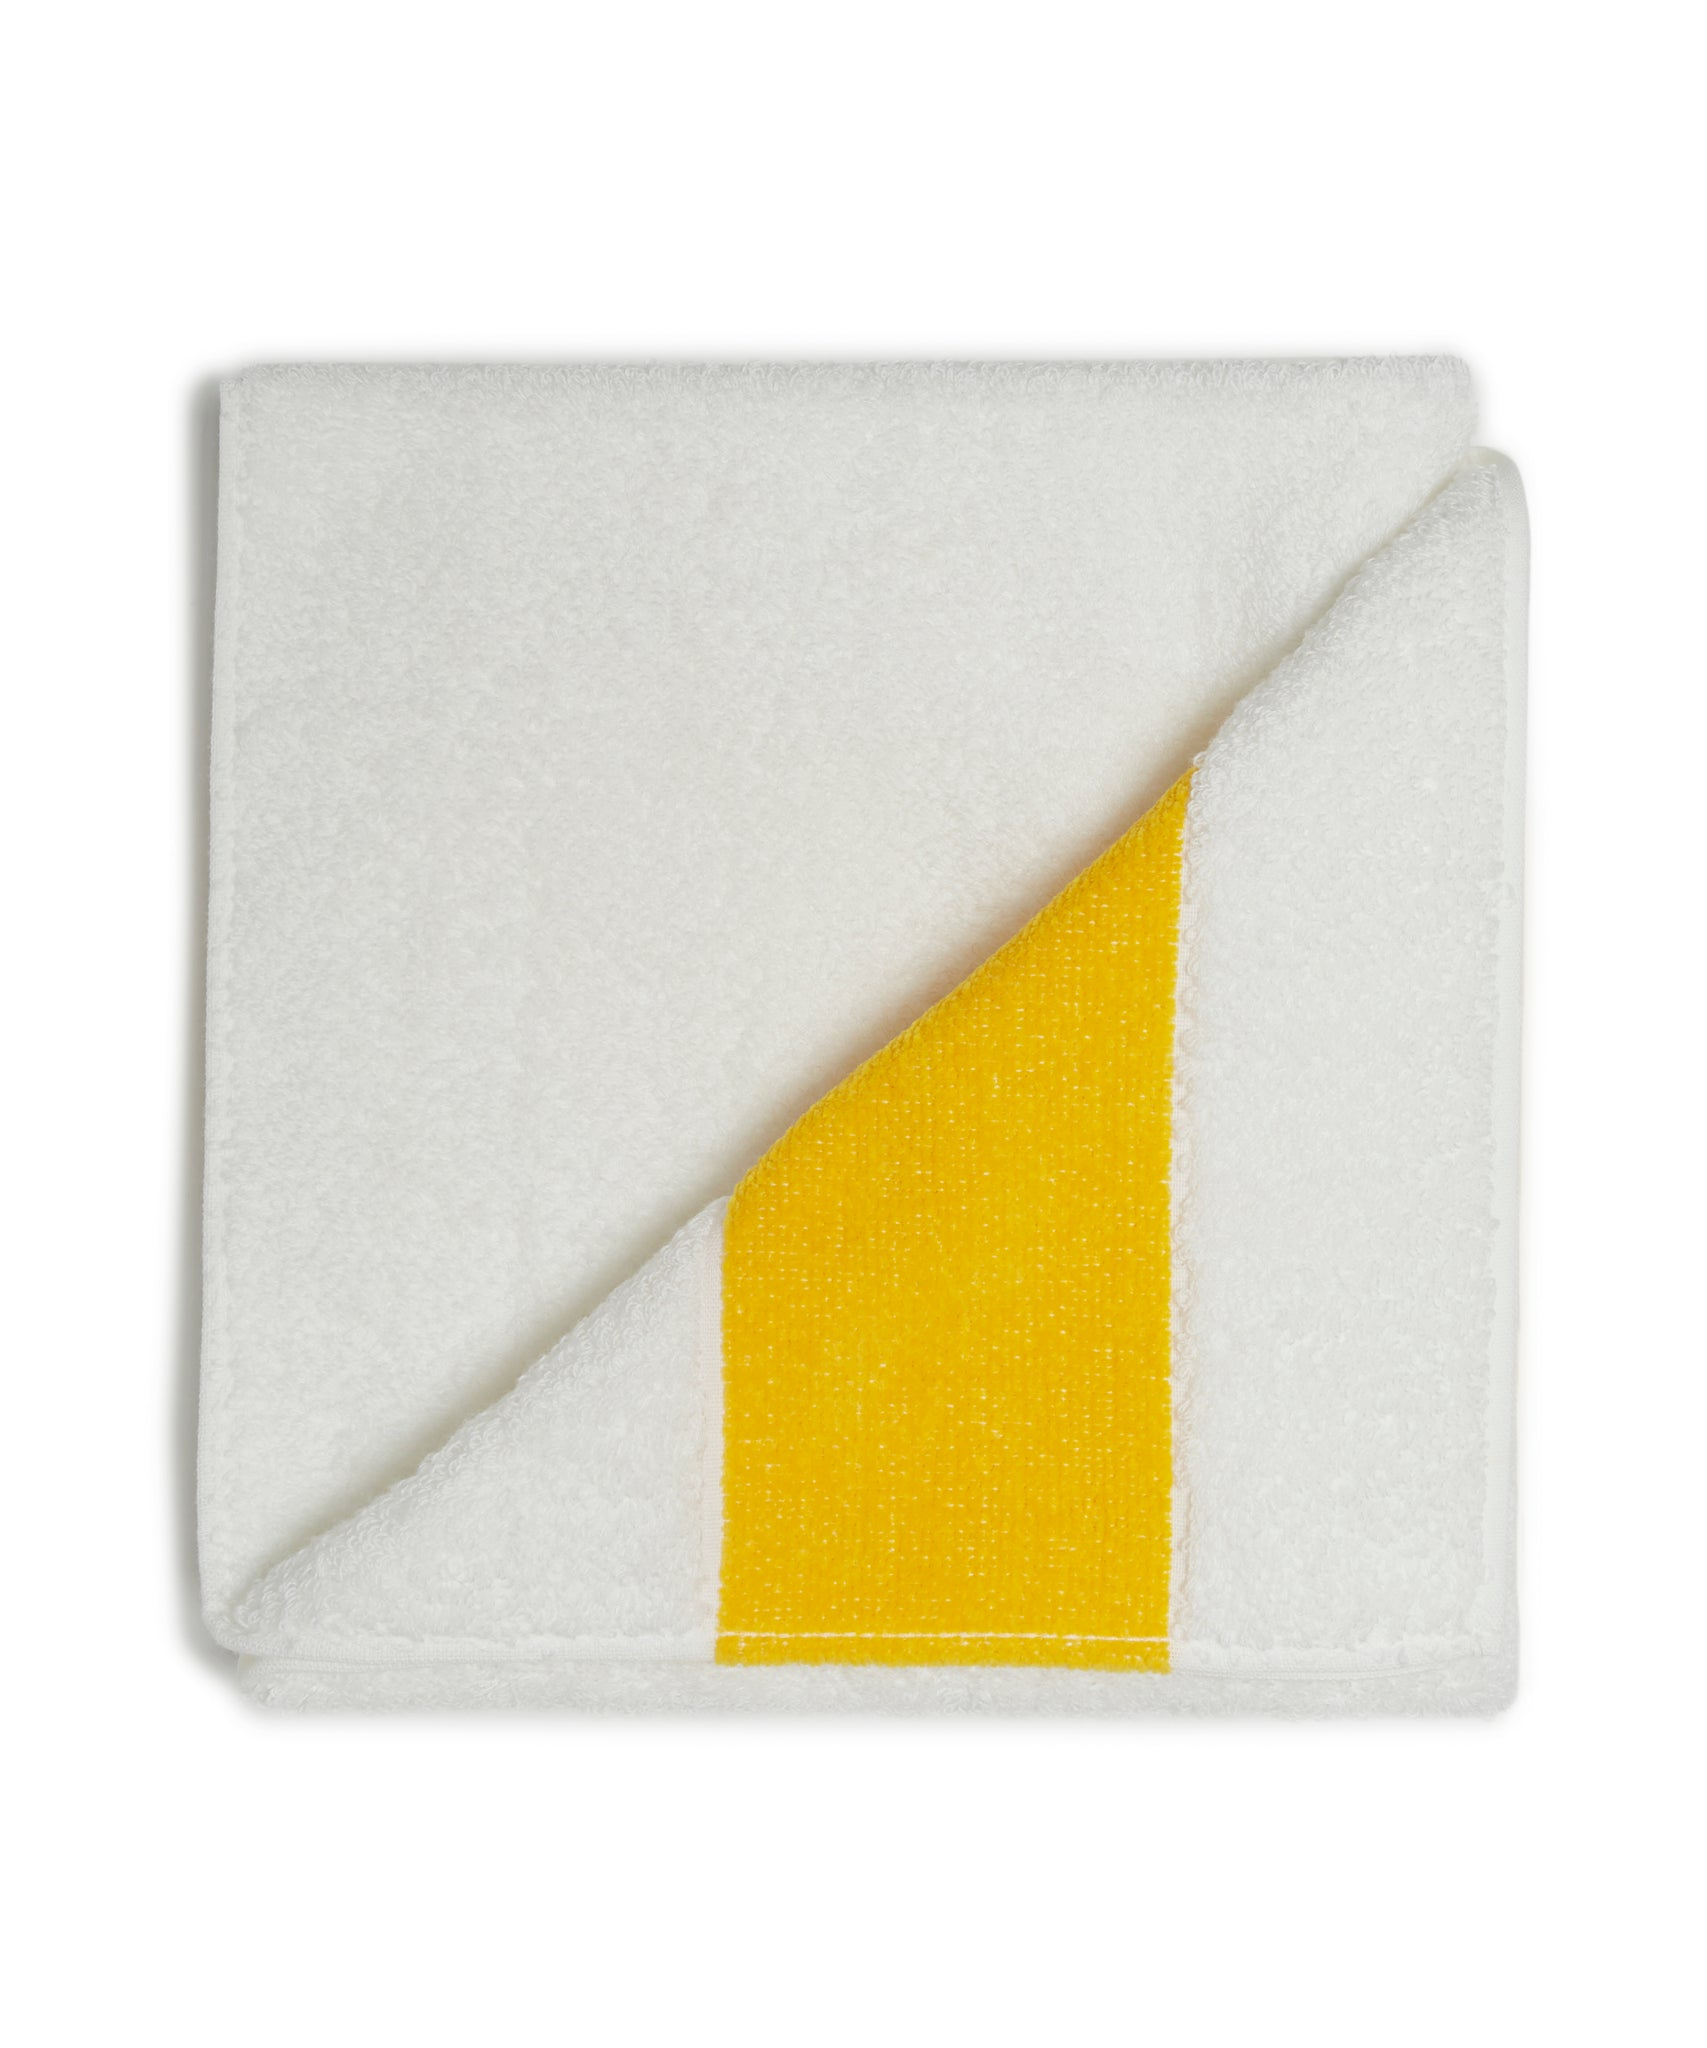 Exclusiv Towel (Sun) by Feiler